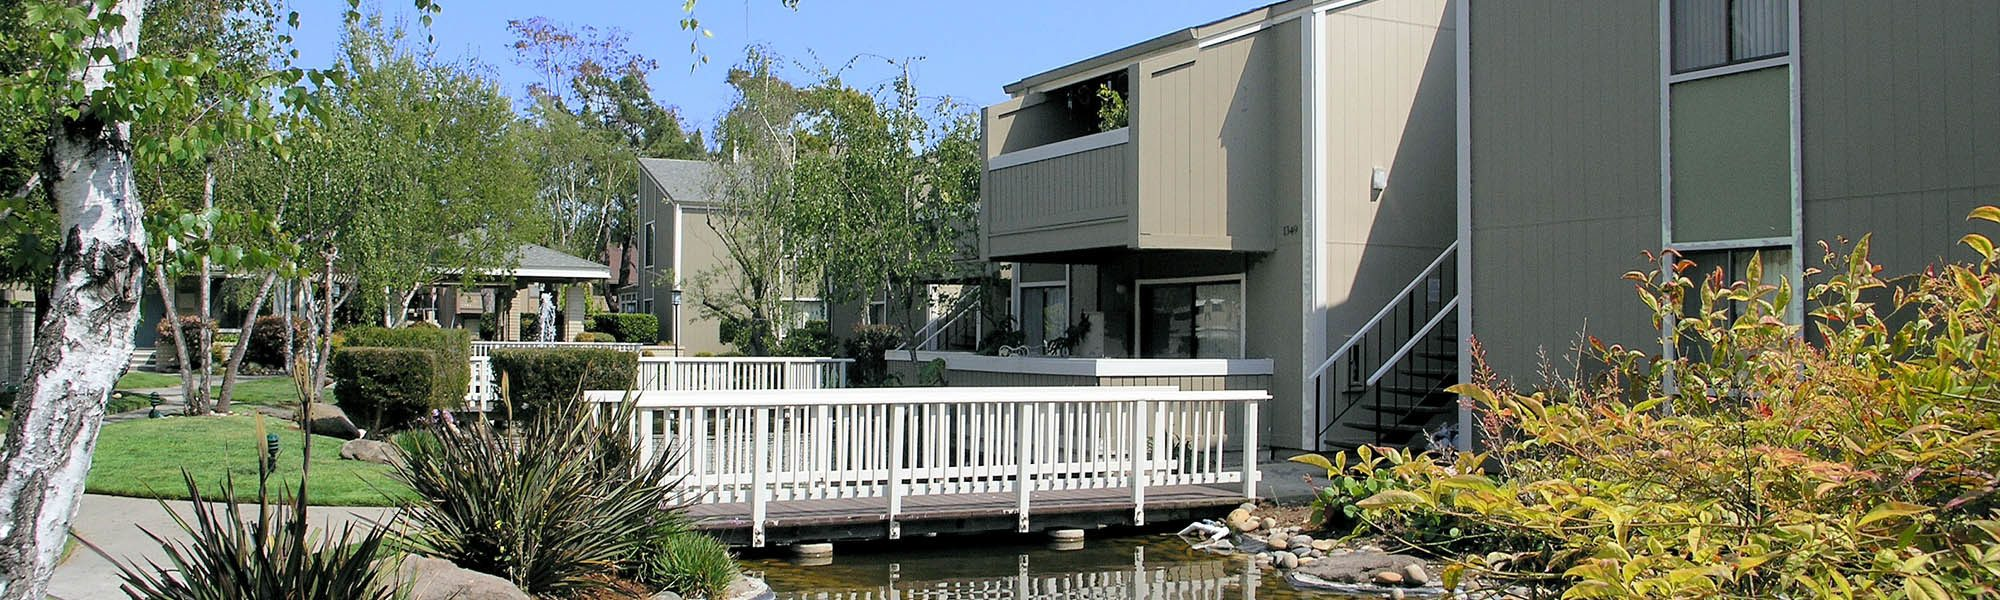 Learn about our neighborhood at Ballena Village Apartment Homes in Alameda, CA on our website